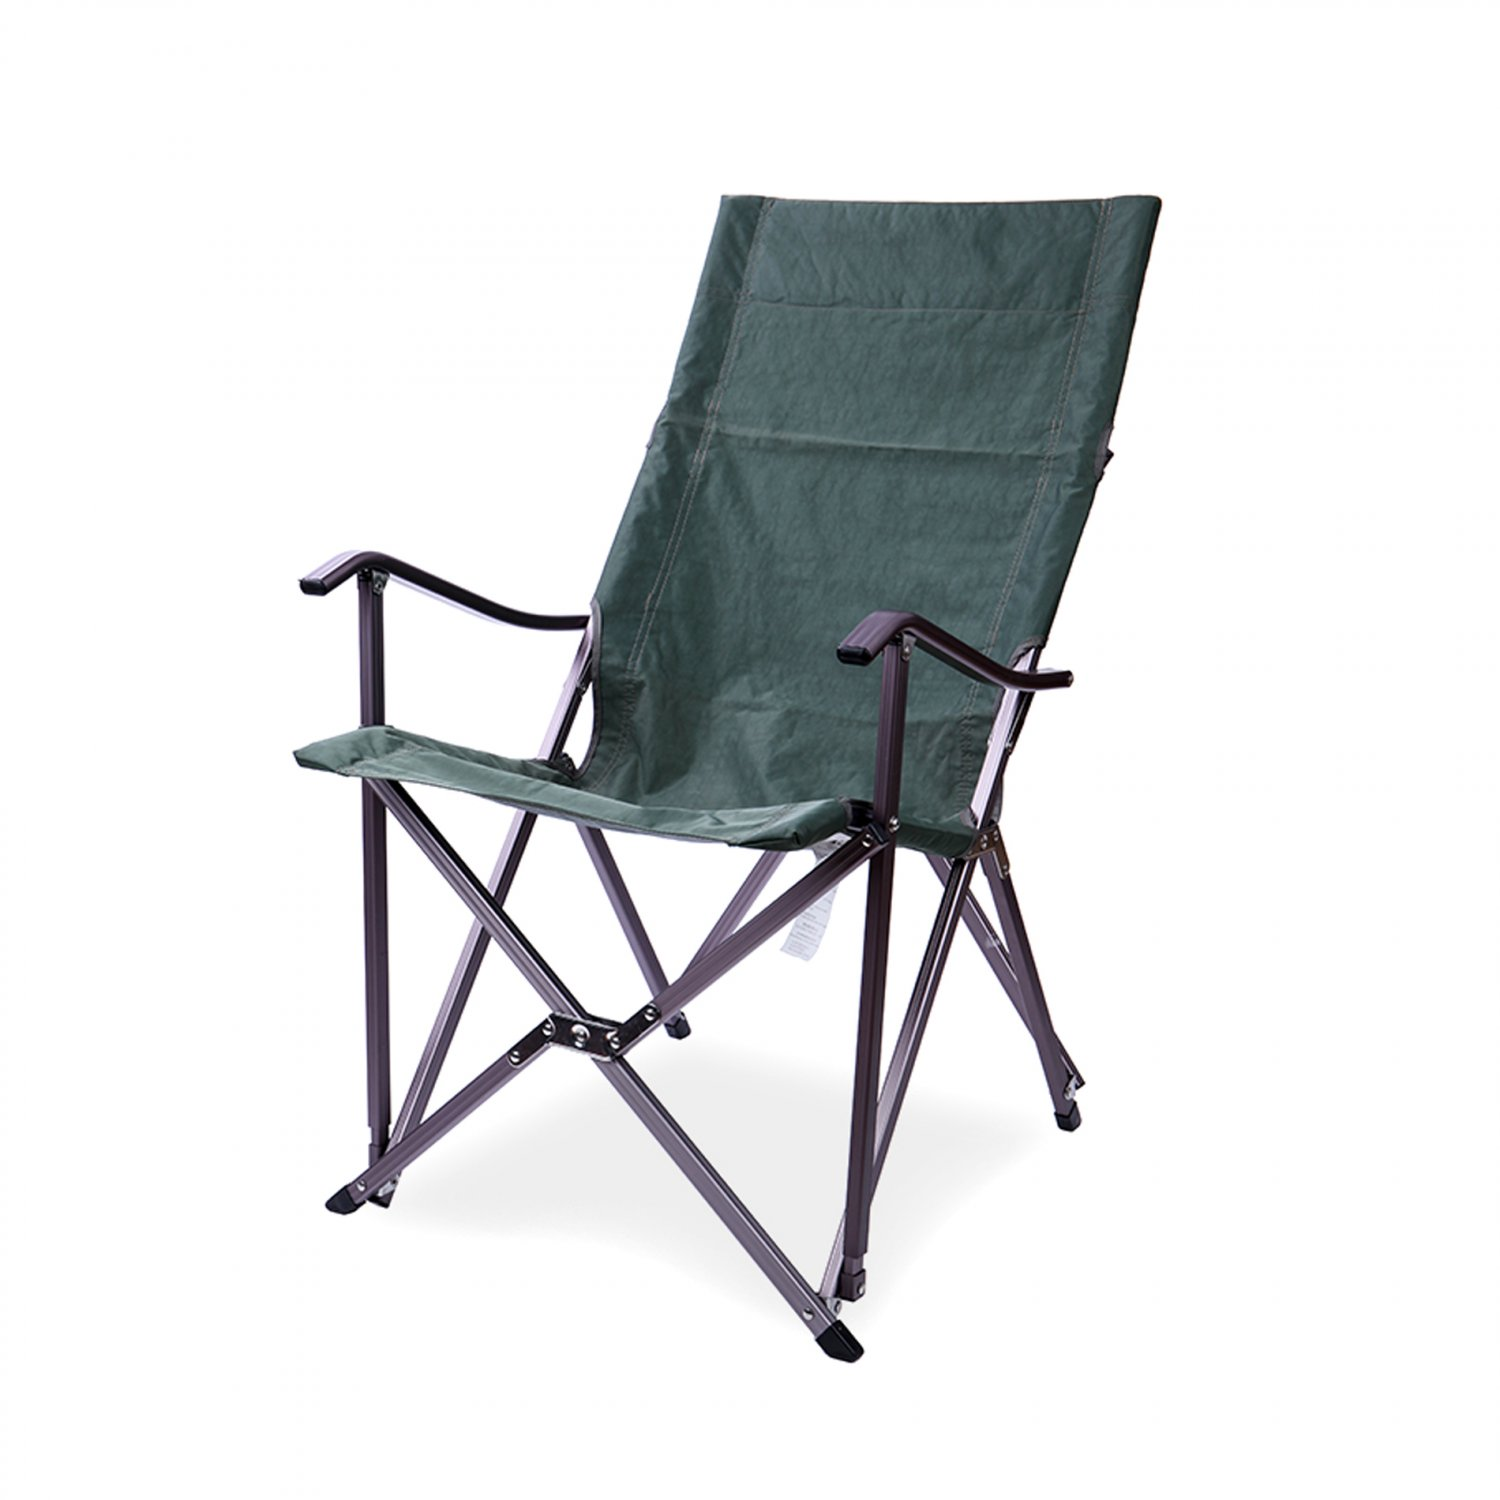 portable folding high chair ergonomic headrest lightweight relax camping seat w